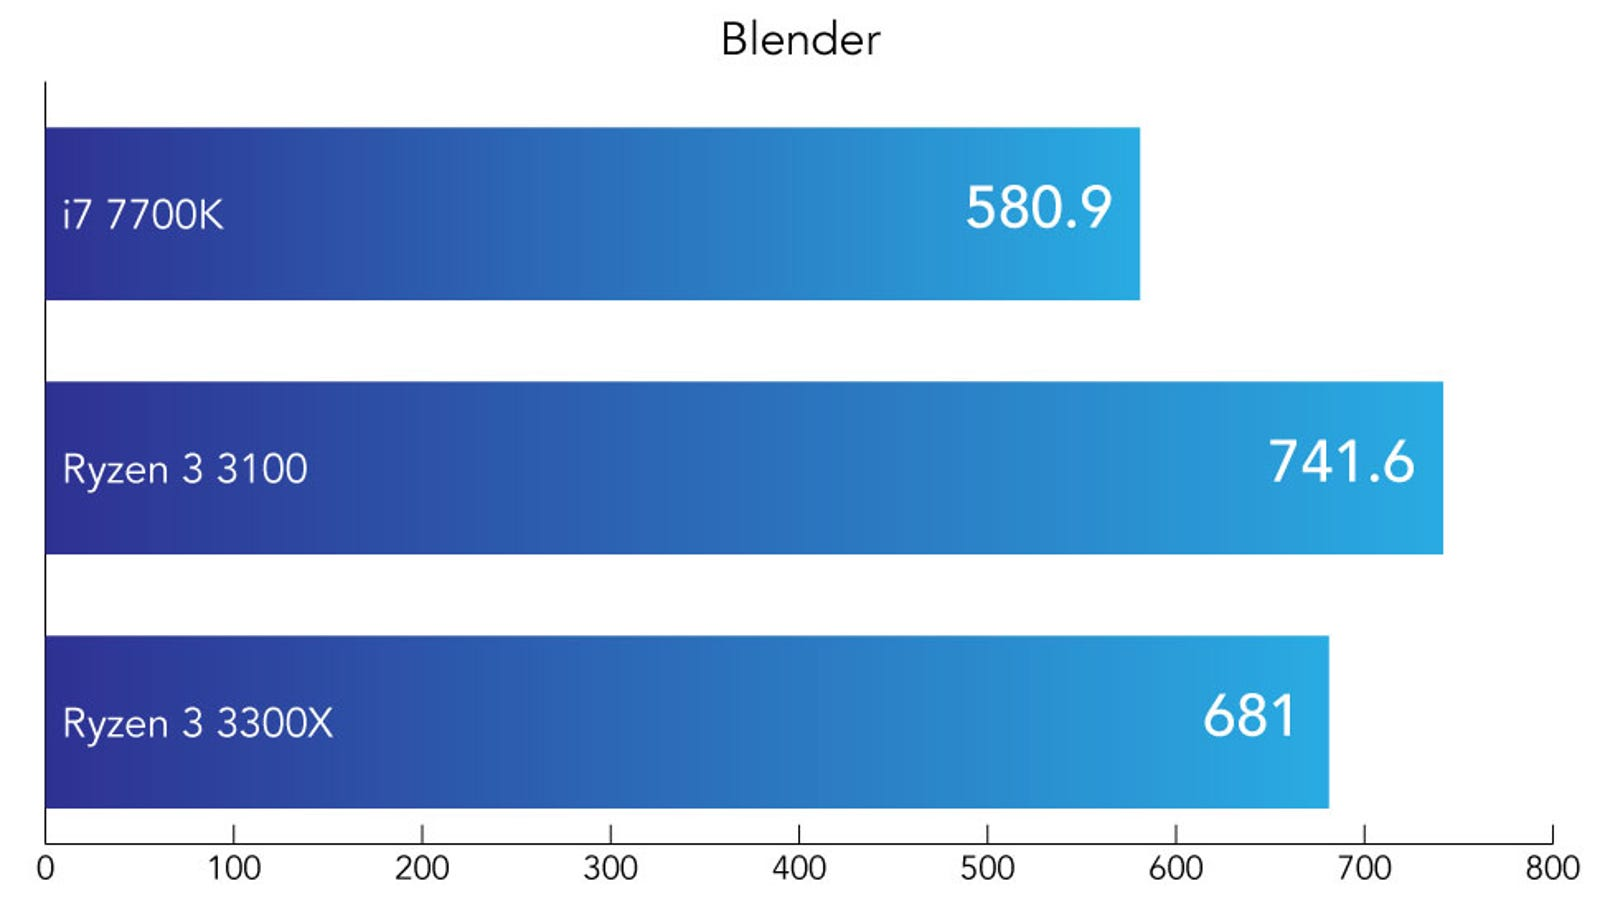 Image rendering times in seconds. Lower is better.